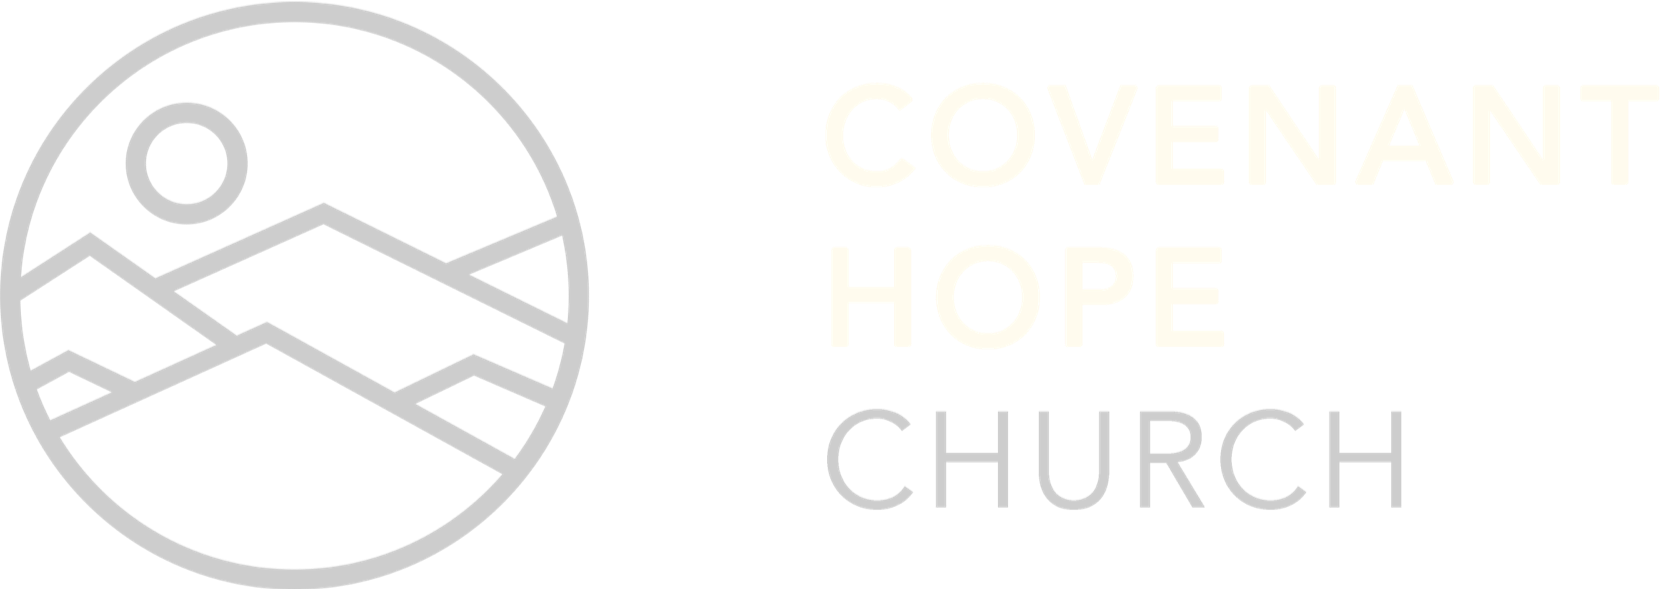 Covenant Hope Church Dubai